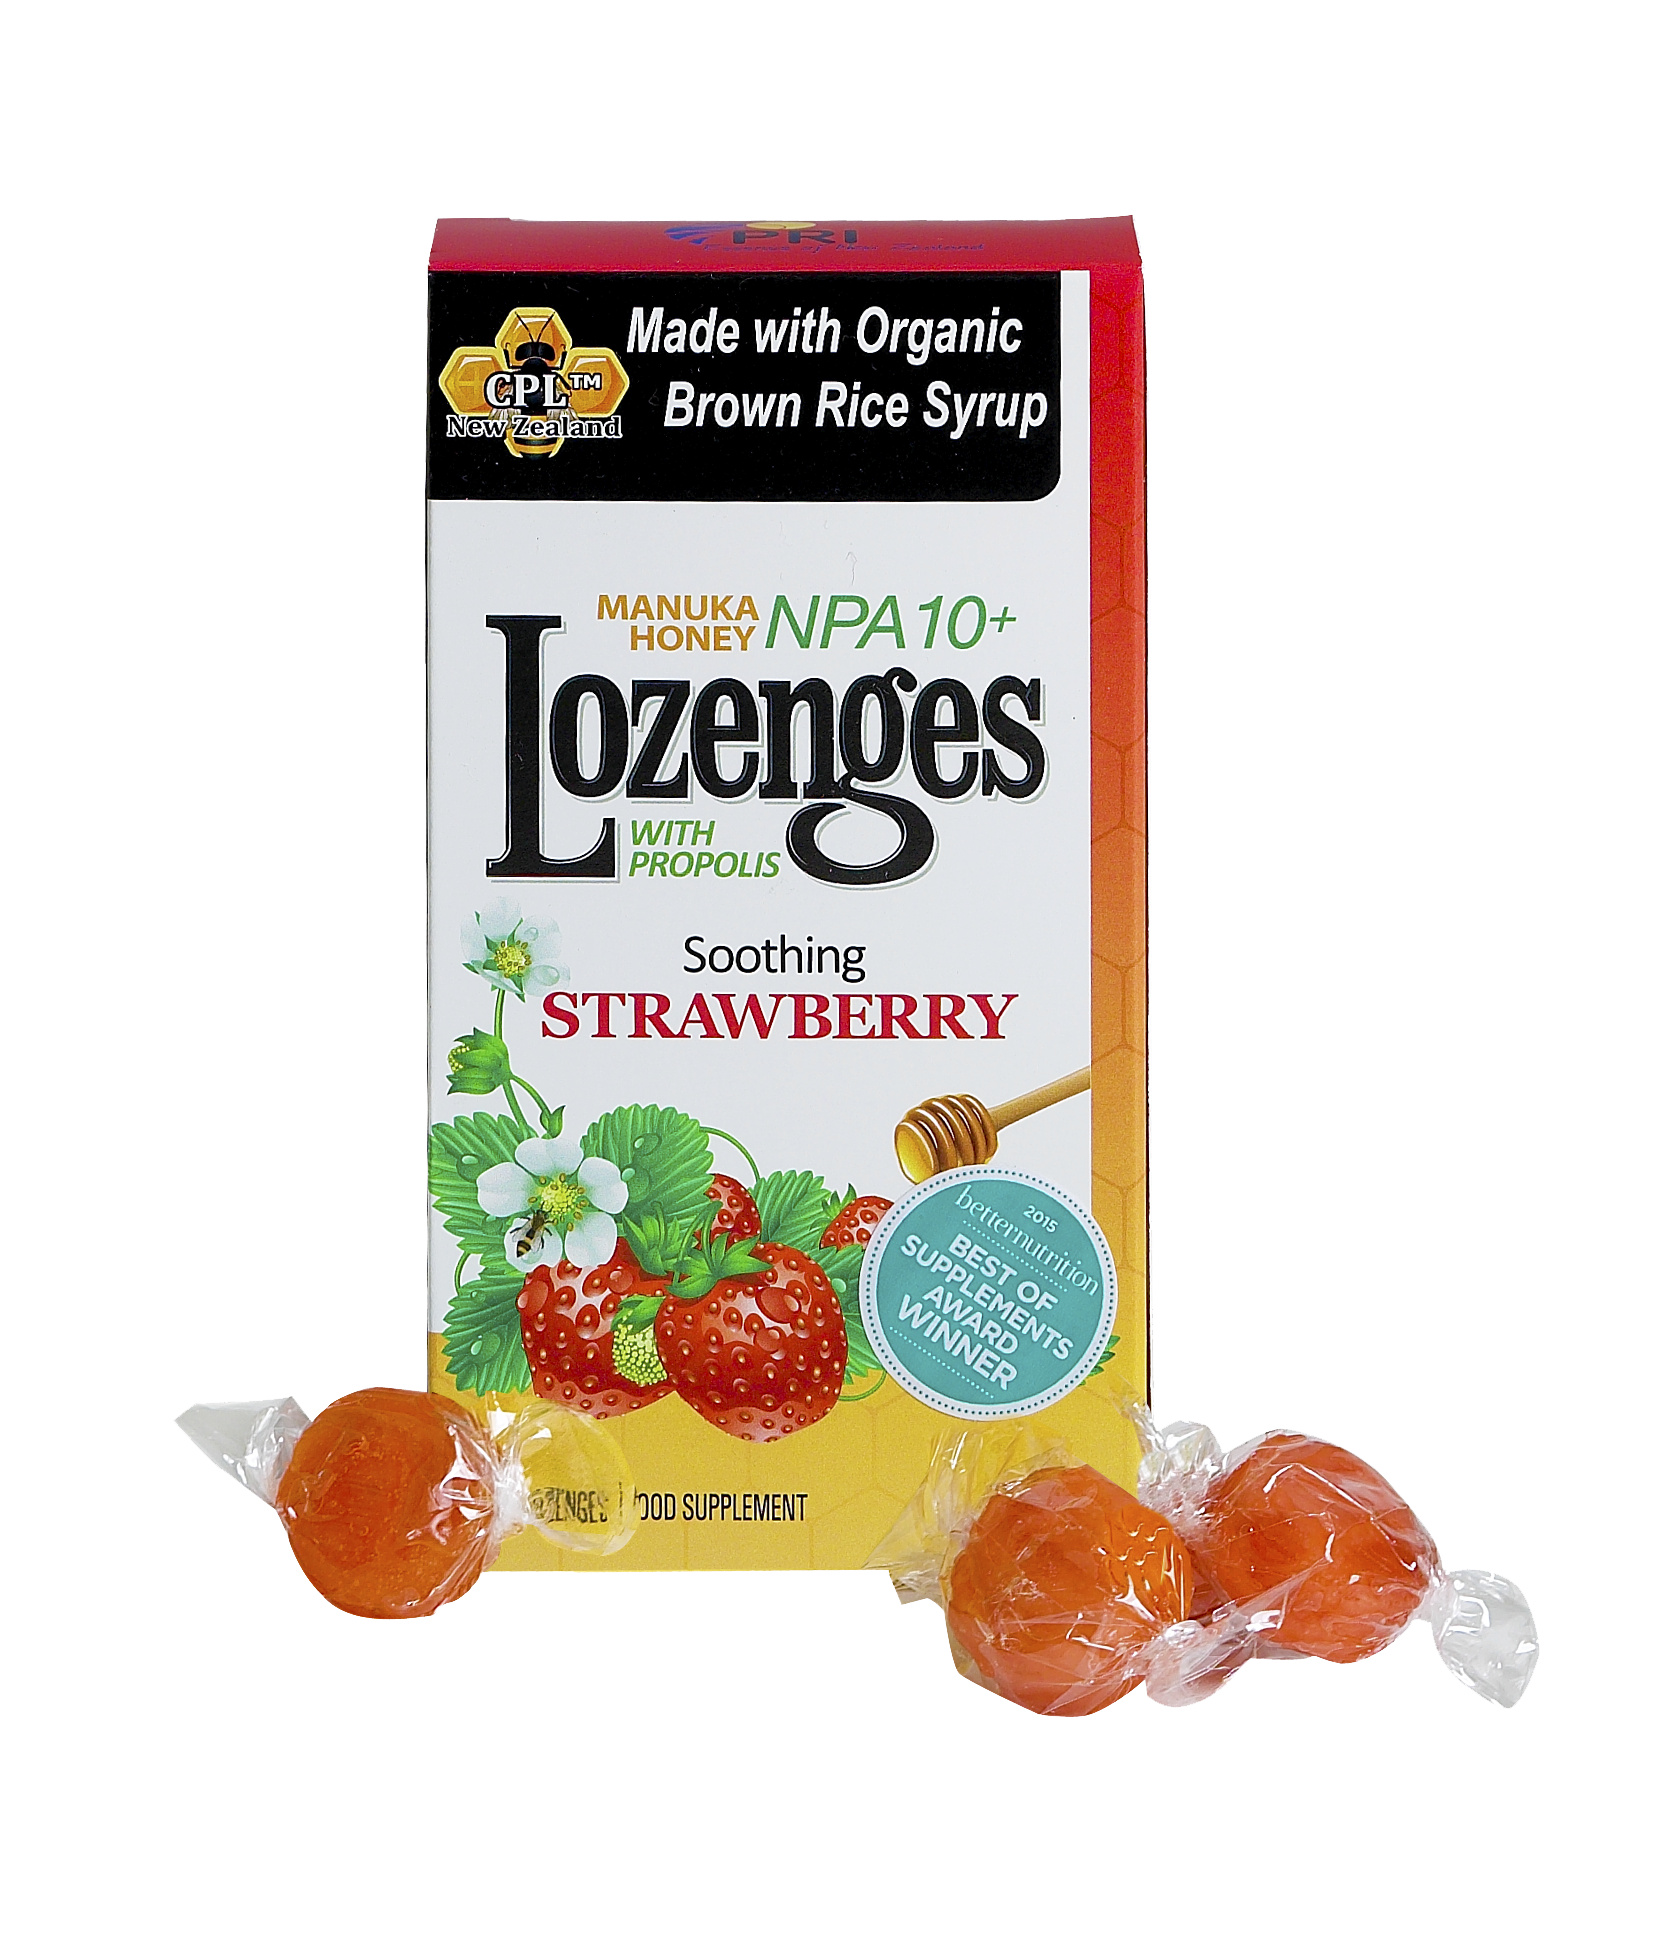 STRAWBERRY MANUKA HONEY LOZENGES WITH PROPOLIS FOOD SUPPLEMENT | The